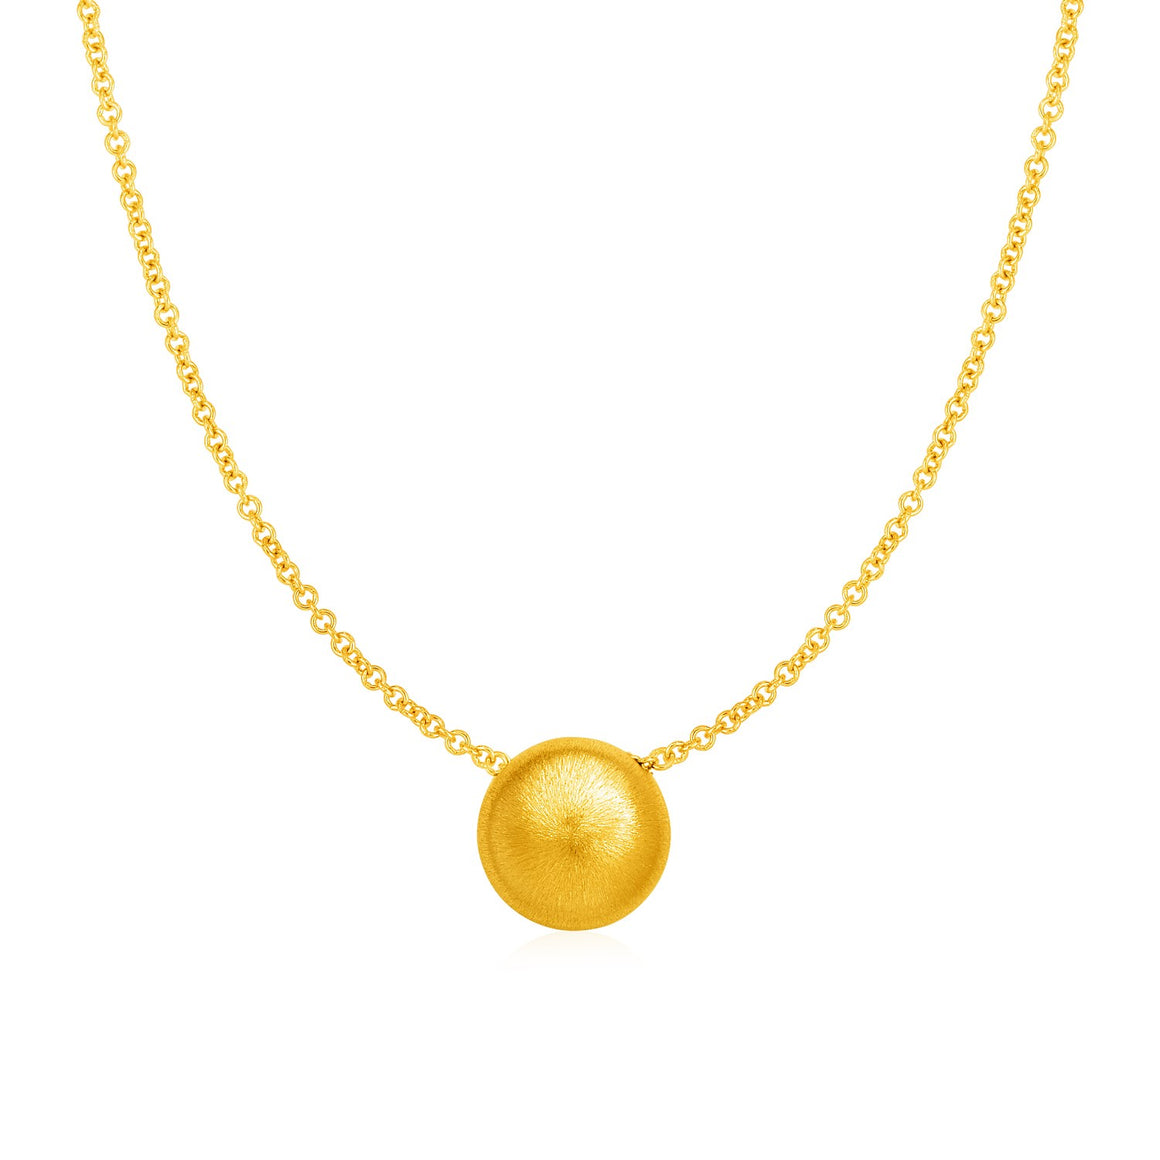 14k Yellow Gold Reversible Necklace with Bead Pendant